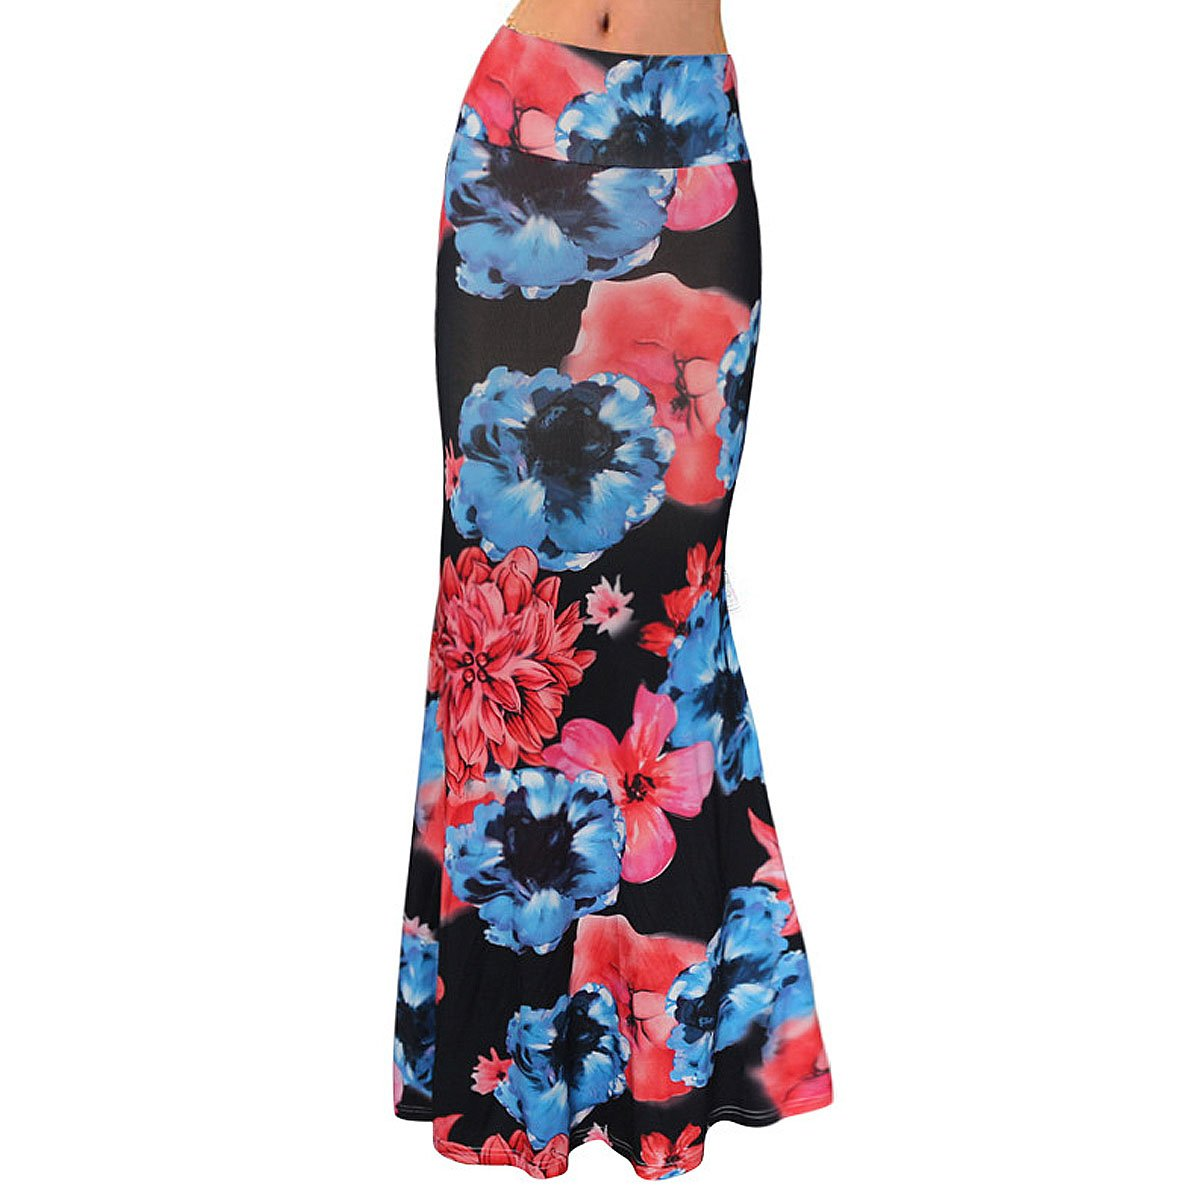 c0d37be2f7 Top 10 wholesale Traditional Maxi Skirts - Chinabrands.com